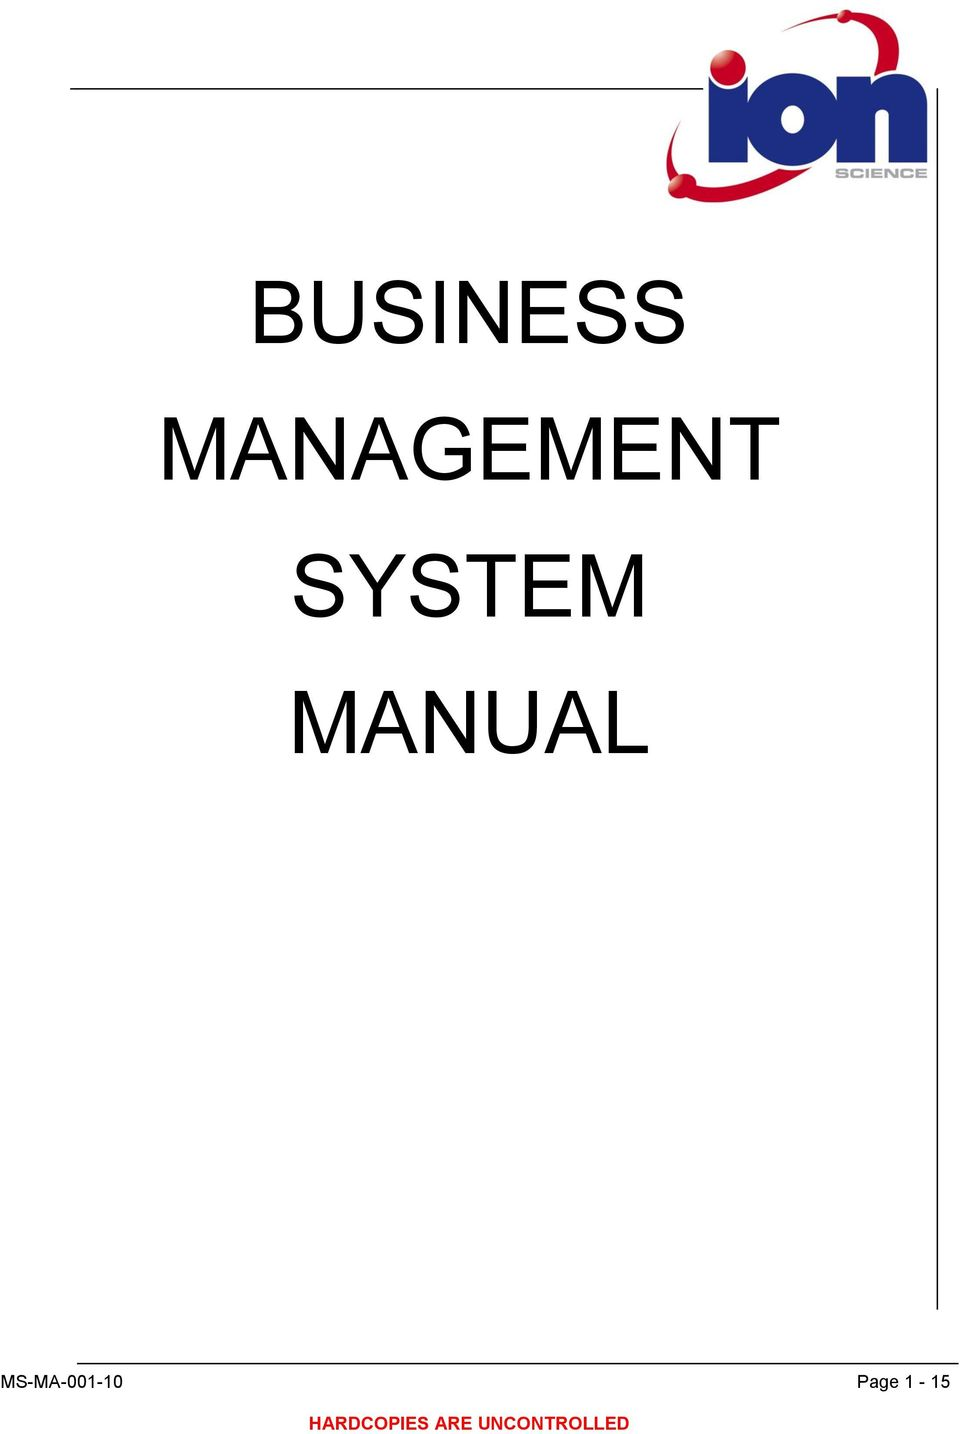 SYSTEM MANUAL